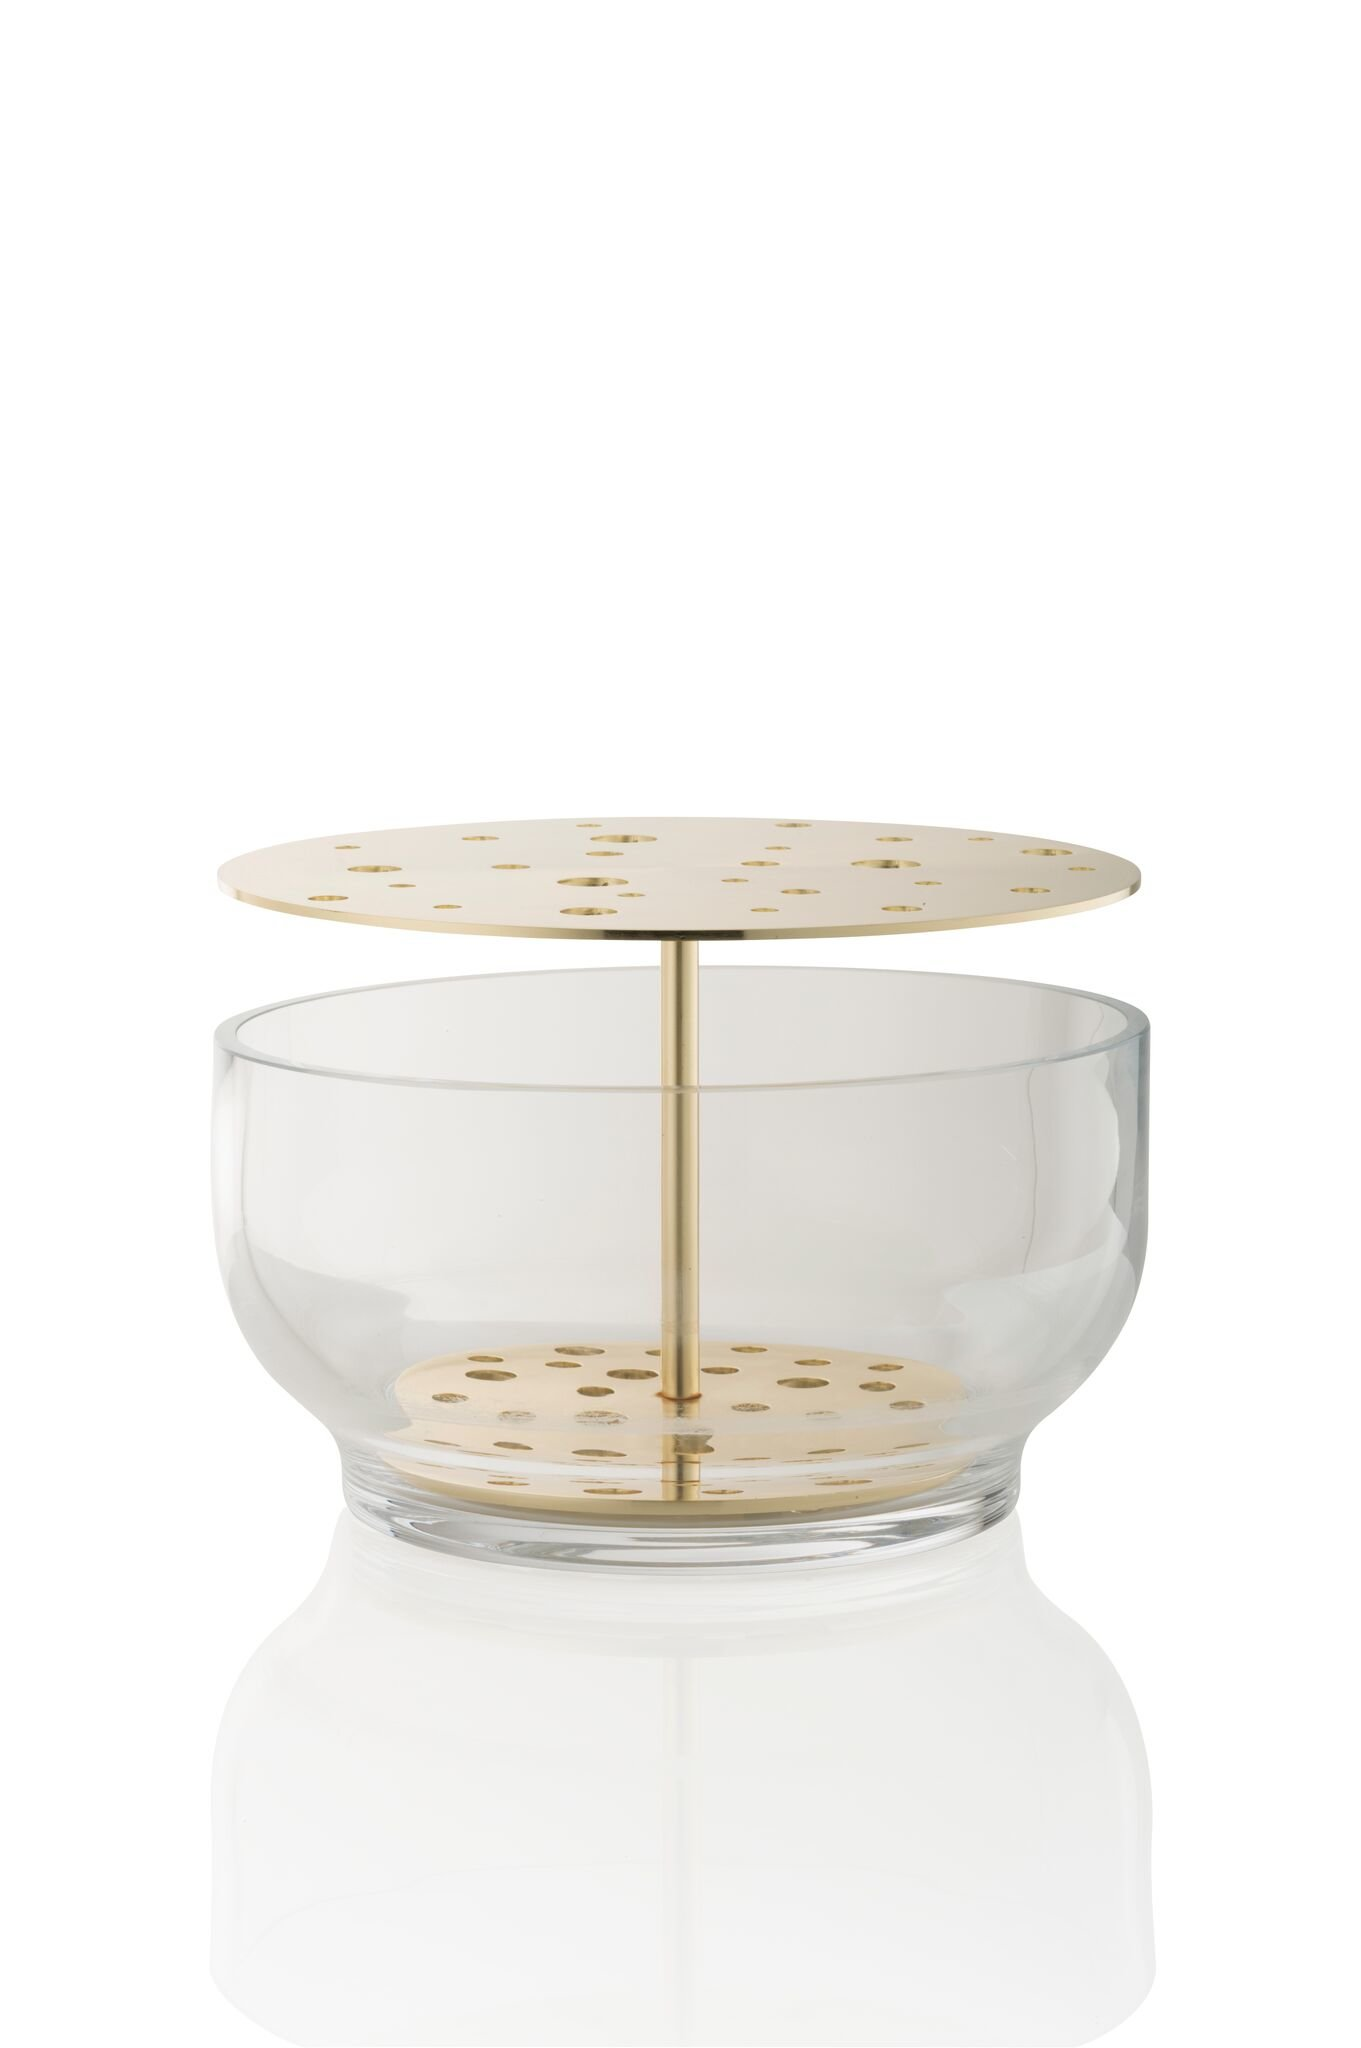 Hay Tray Table Fritz Hansen Ikebana Vase Shop I Design-bestseller.de